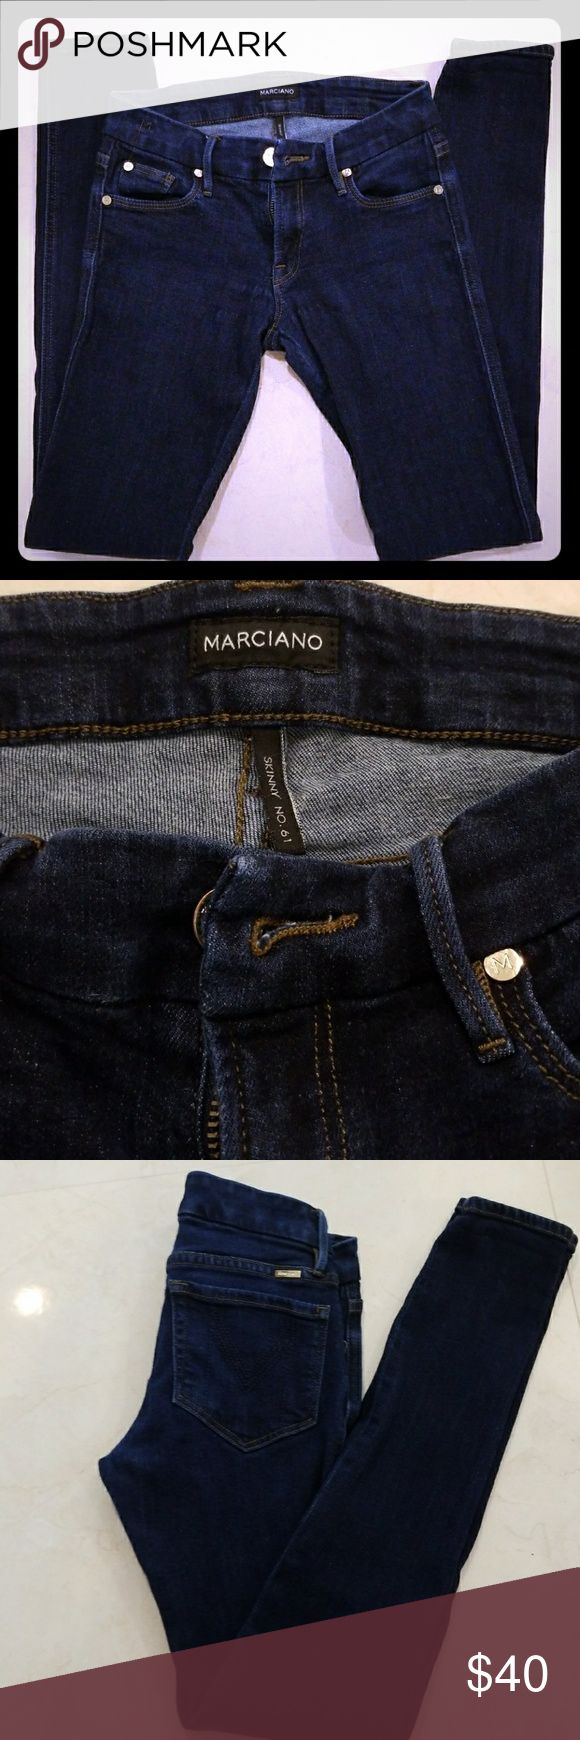 """Guess marciano Jeans Skinny jeans from Guess Marciano, gently used few times but no longer fits. No rips, stains, smoke free home. INSEAM 29"""" Guess by Marciano Jeans Skinny"""